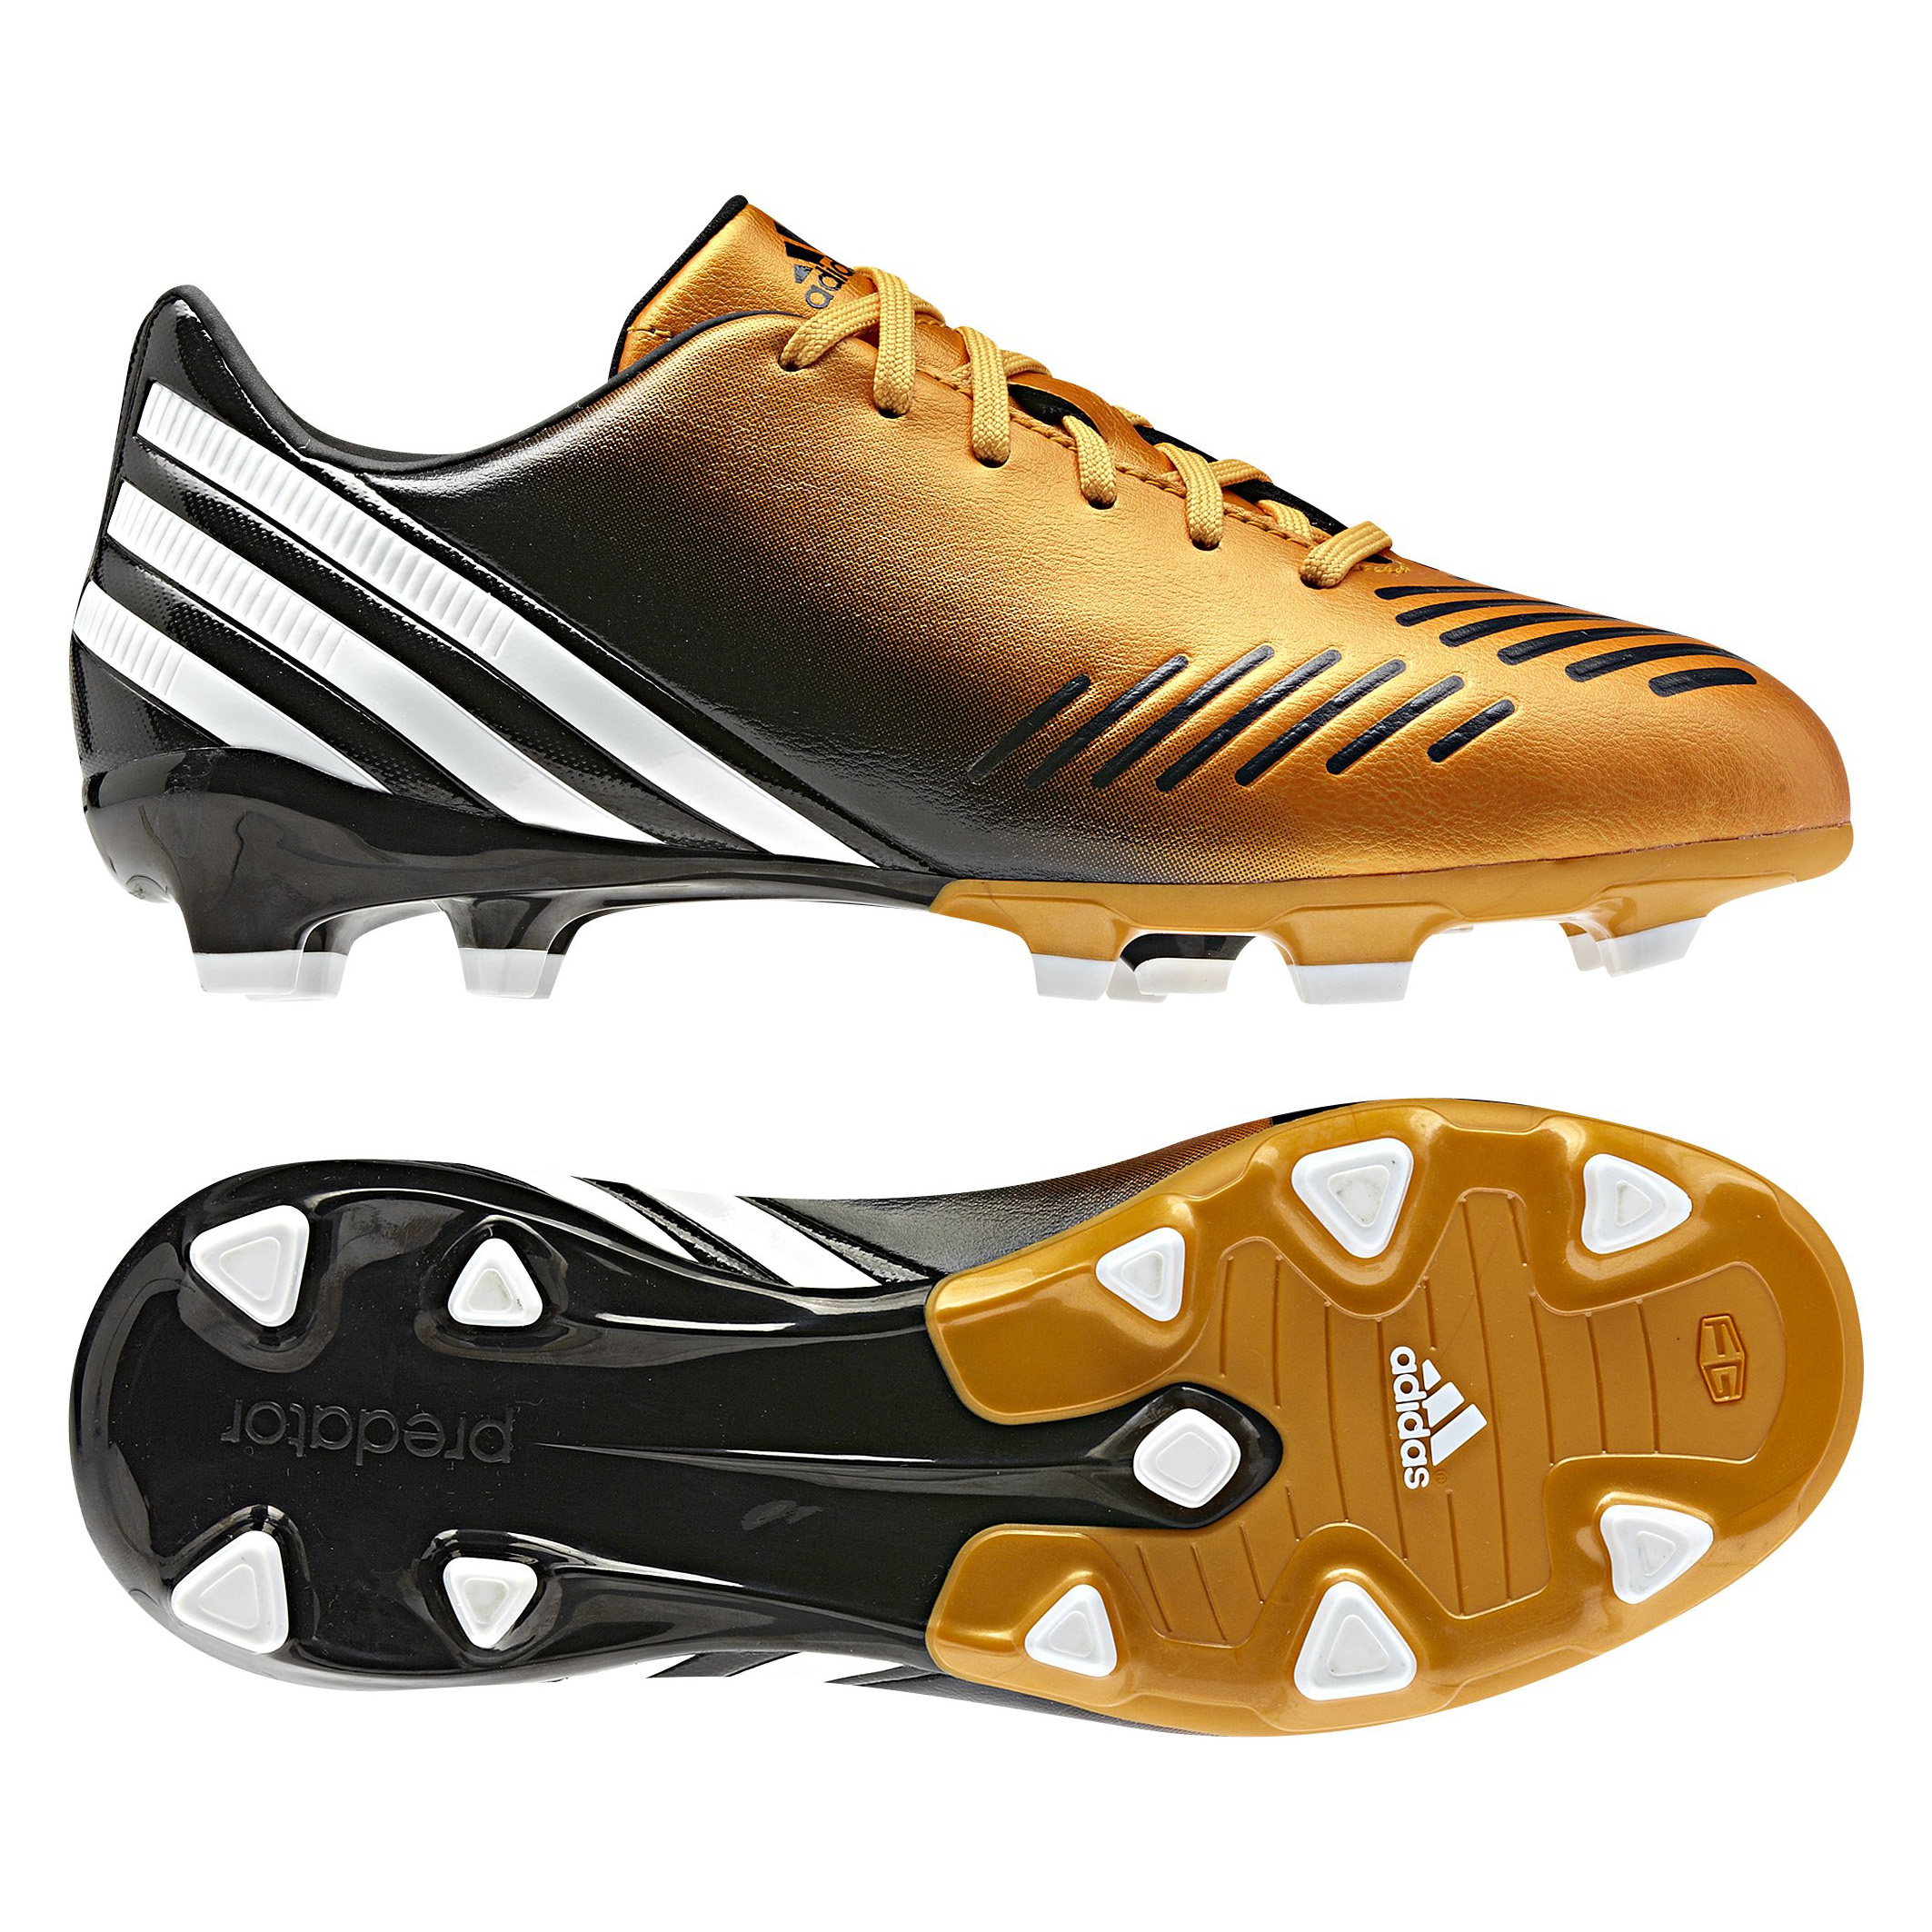 Adidas Predator Absolado LZ TRX Firm Ground Football Boots - Bright Gold/White/Black - Kids